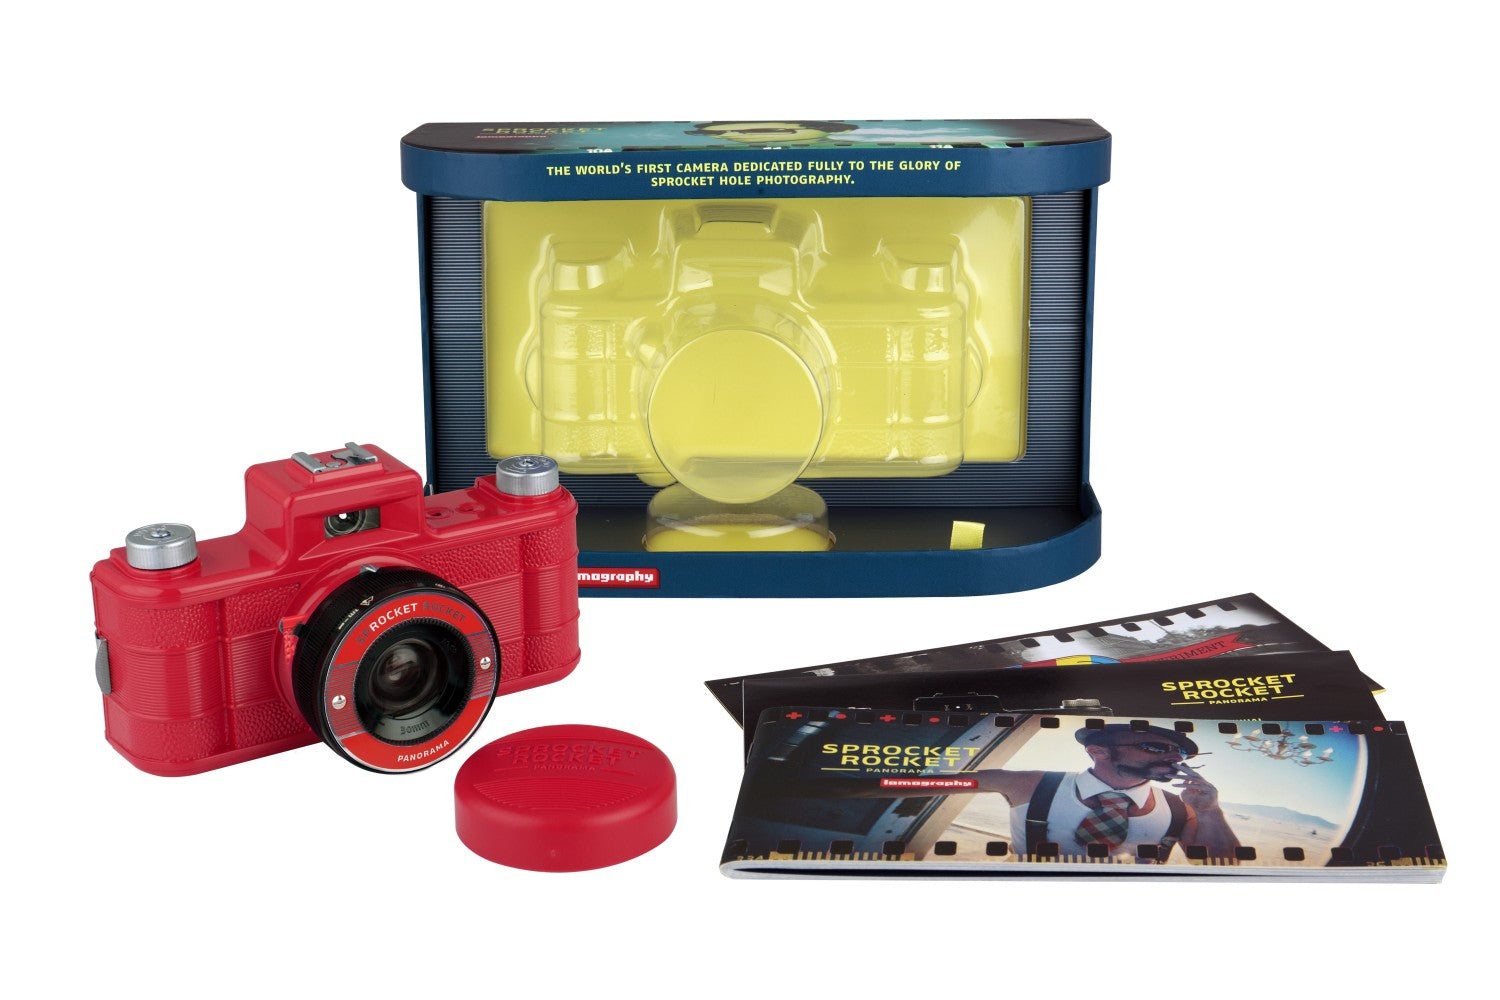 Lomography Sprocket Rocket Red - 35mm Film Camera | Analogue Wonderland packaging